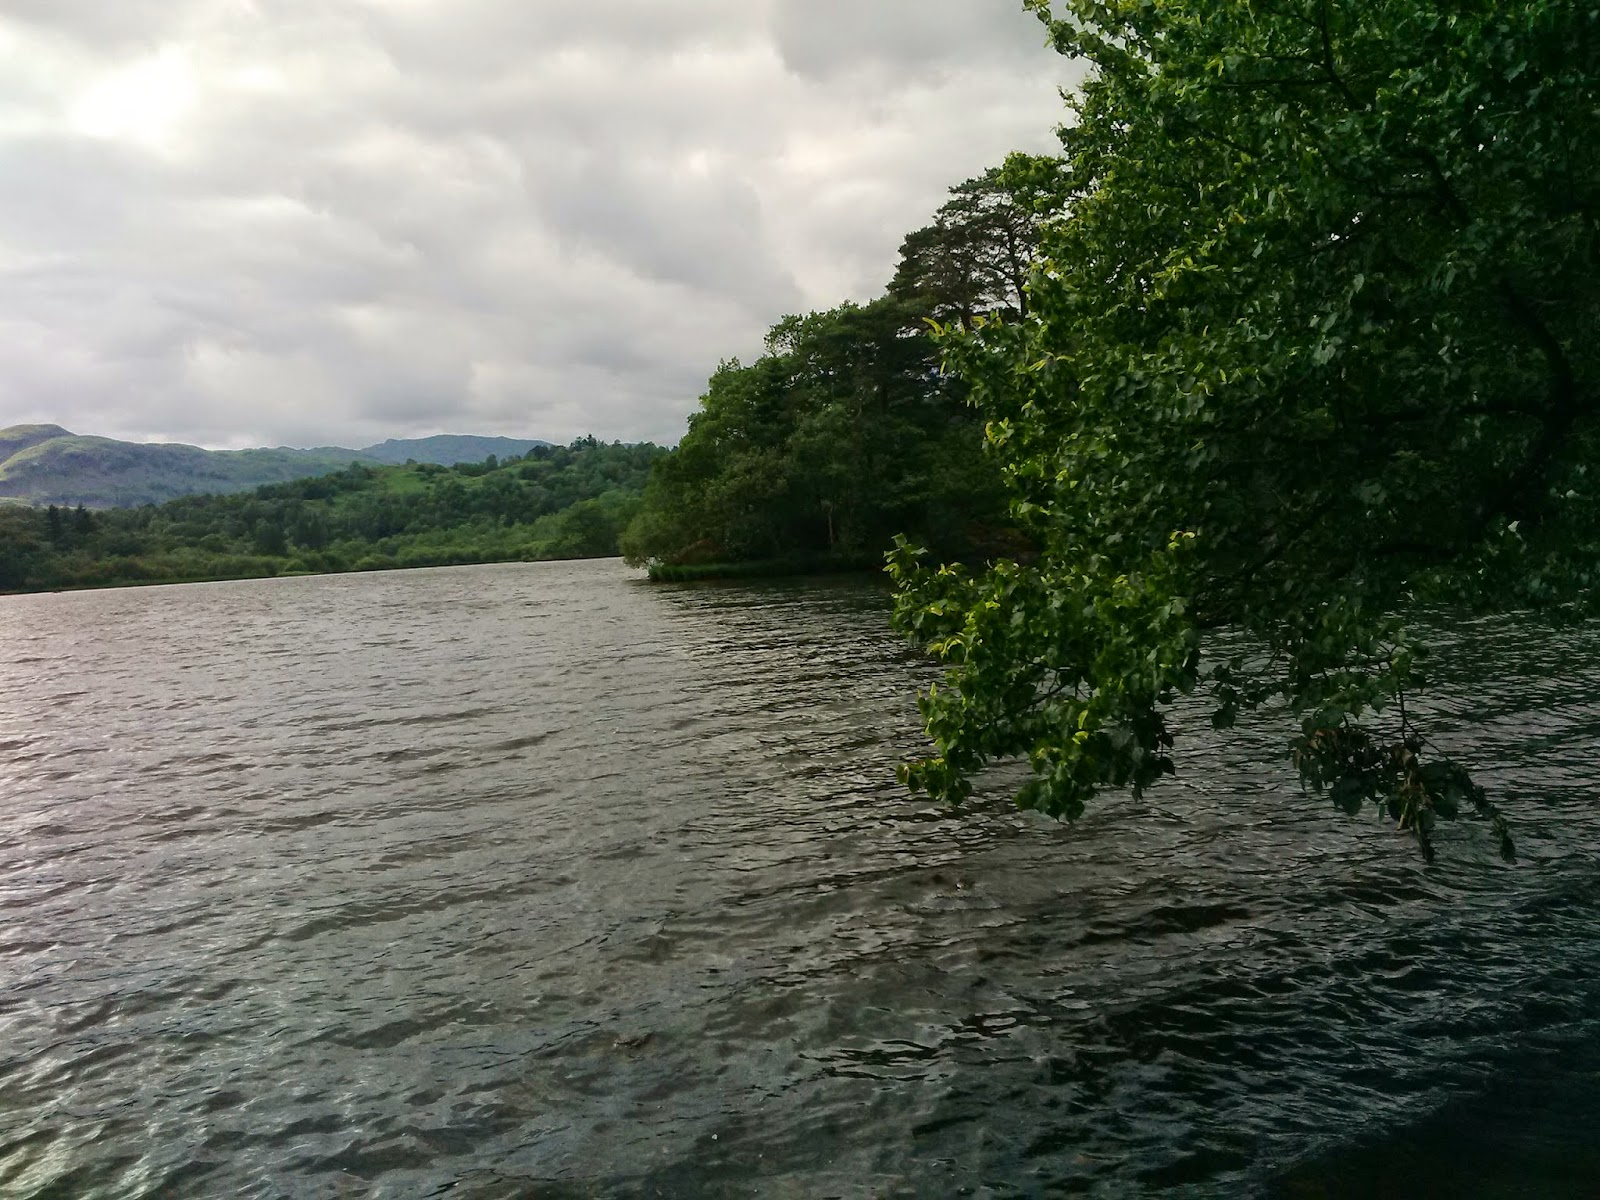 View from island on Rydal Water, Lake District